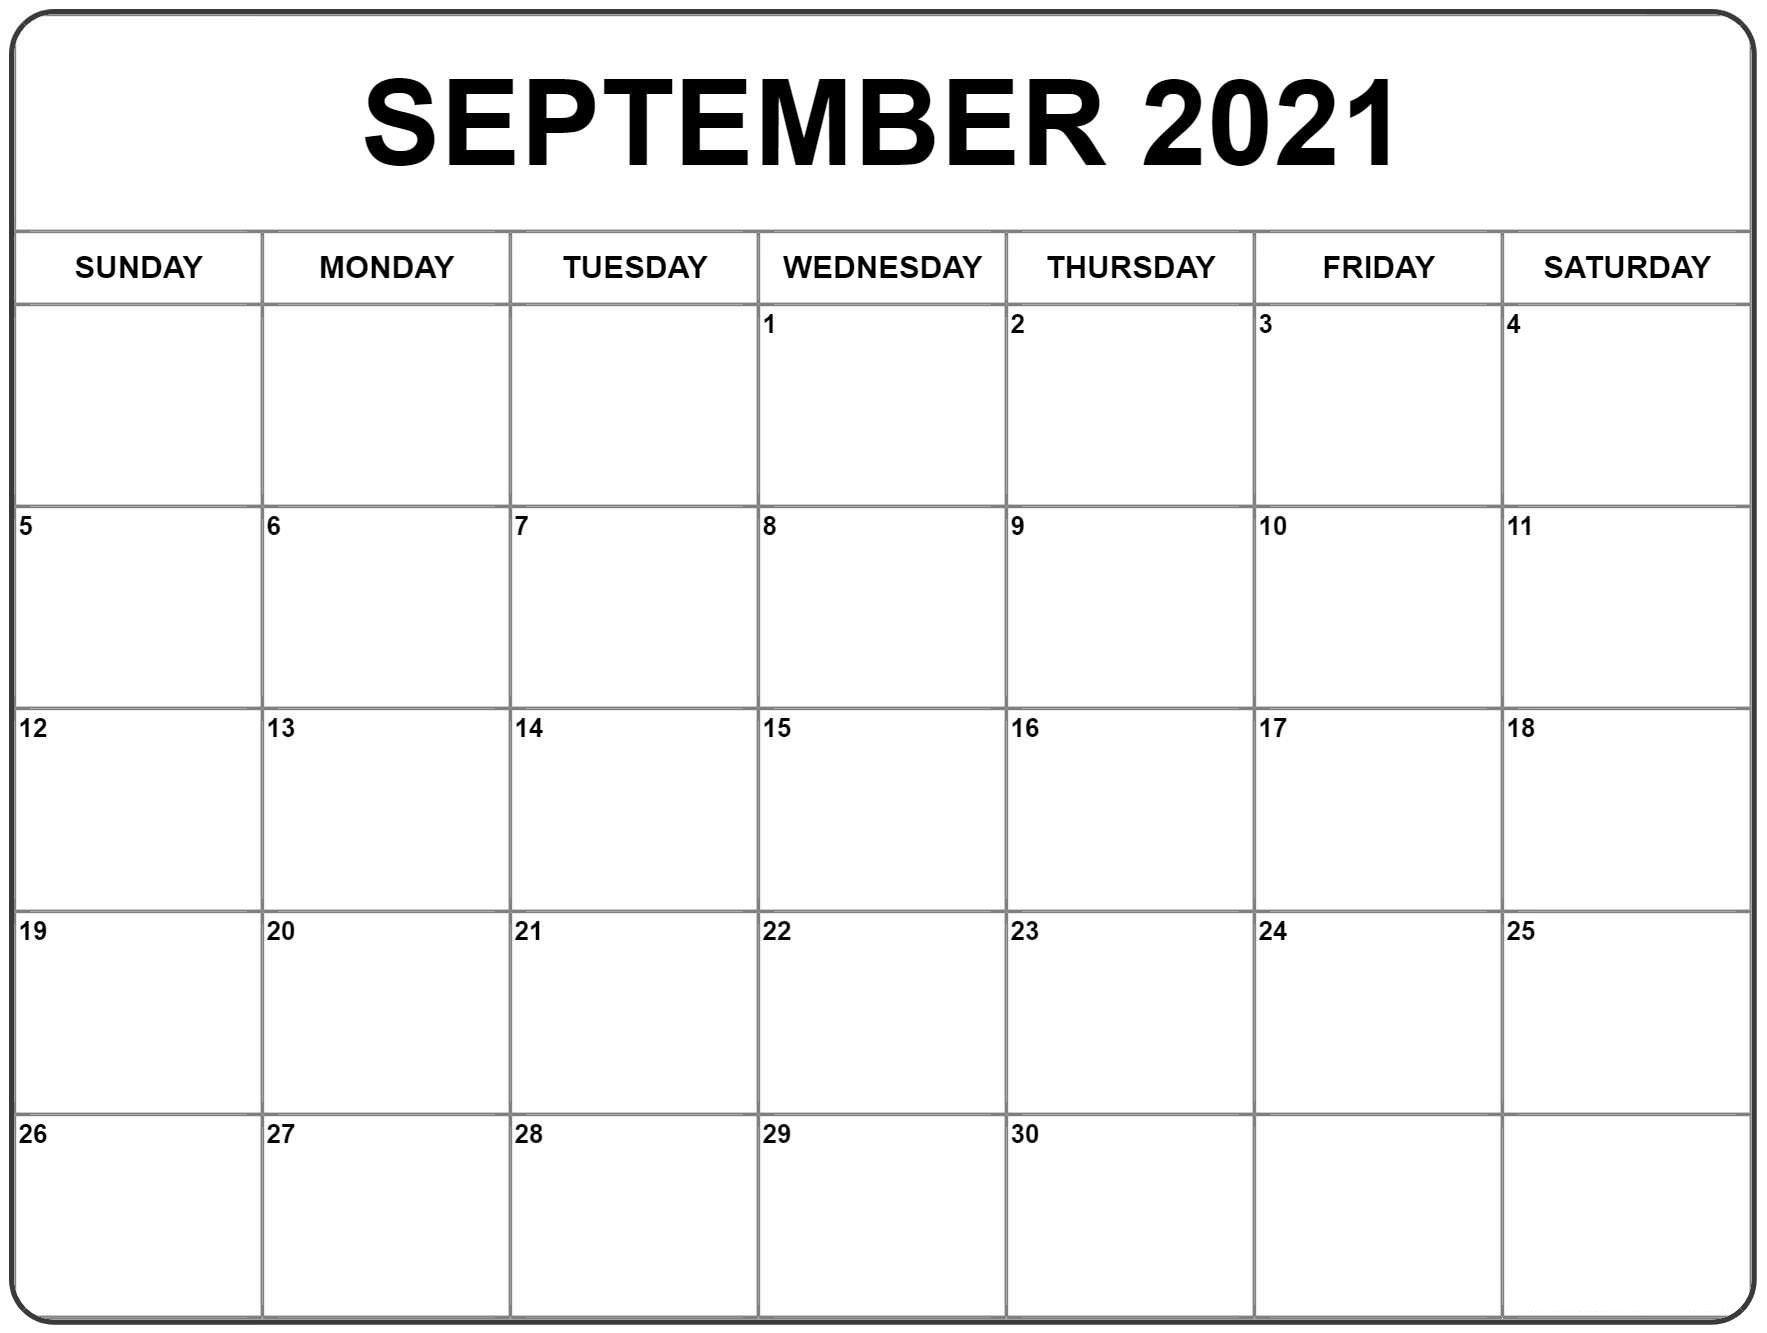 September 2021 Calendar Calendar Printables September Calendar Monthly Calendar Printable